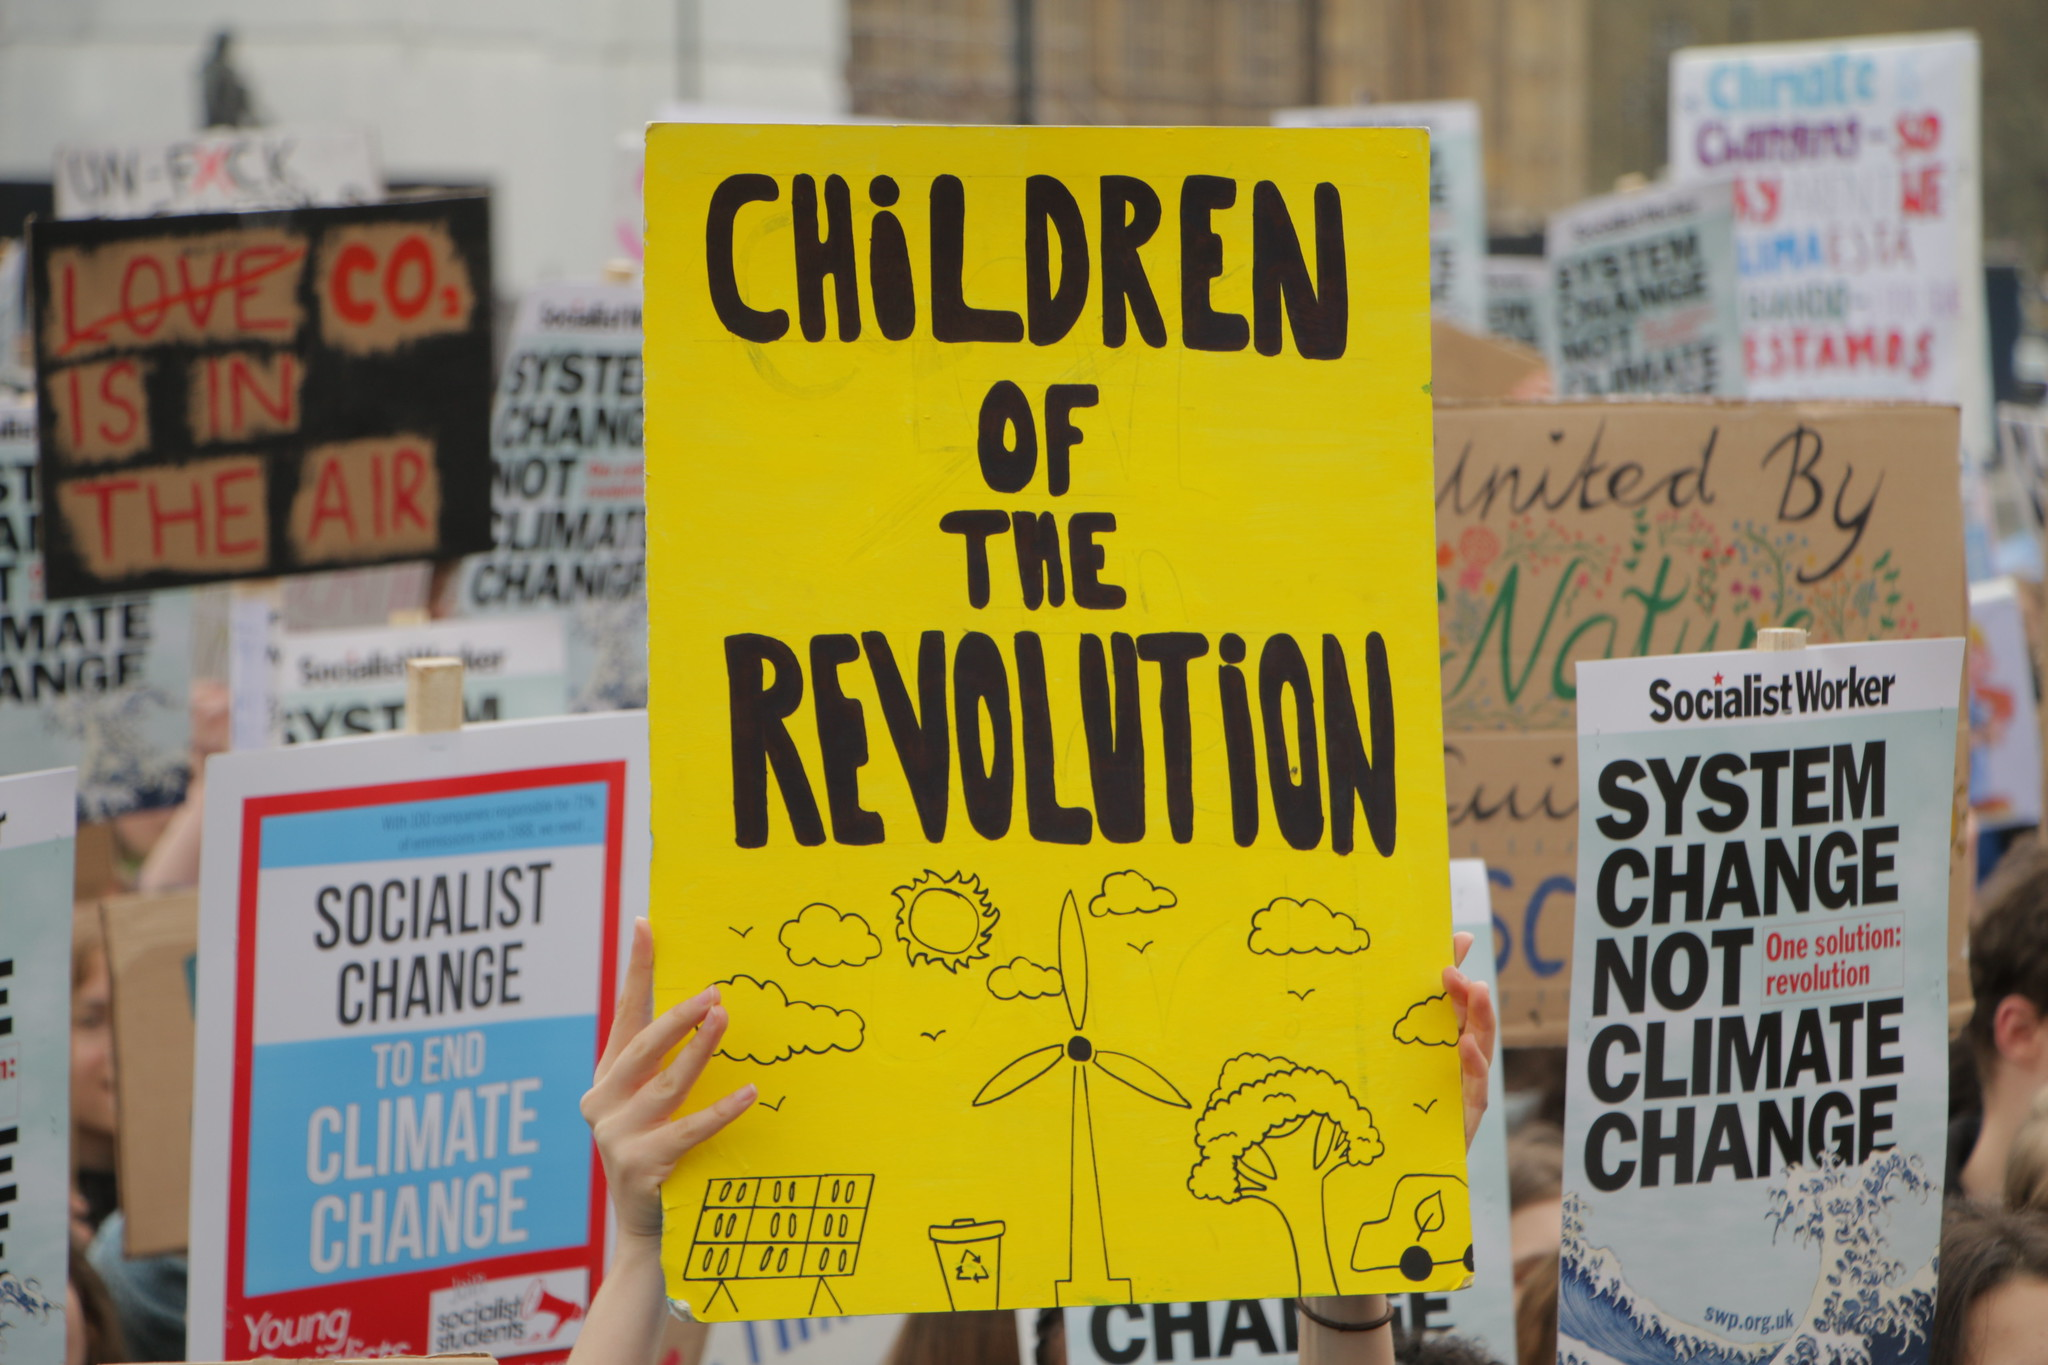 Photo of lots of different climate protest signs - in the centre a yellow sign says 'Children of the revolution' and is illustrated by wind farms